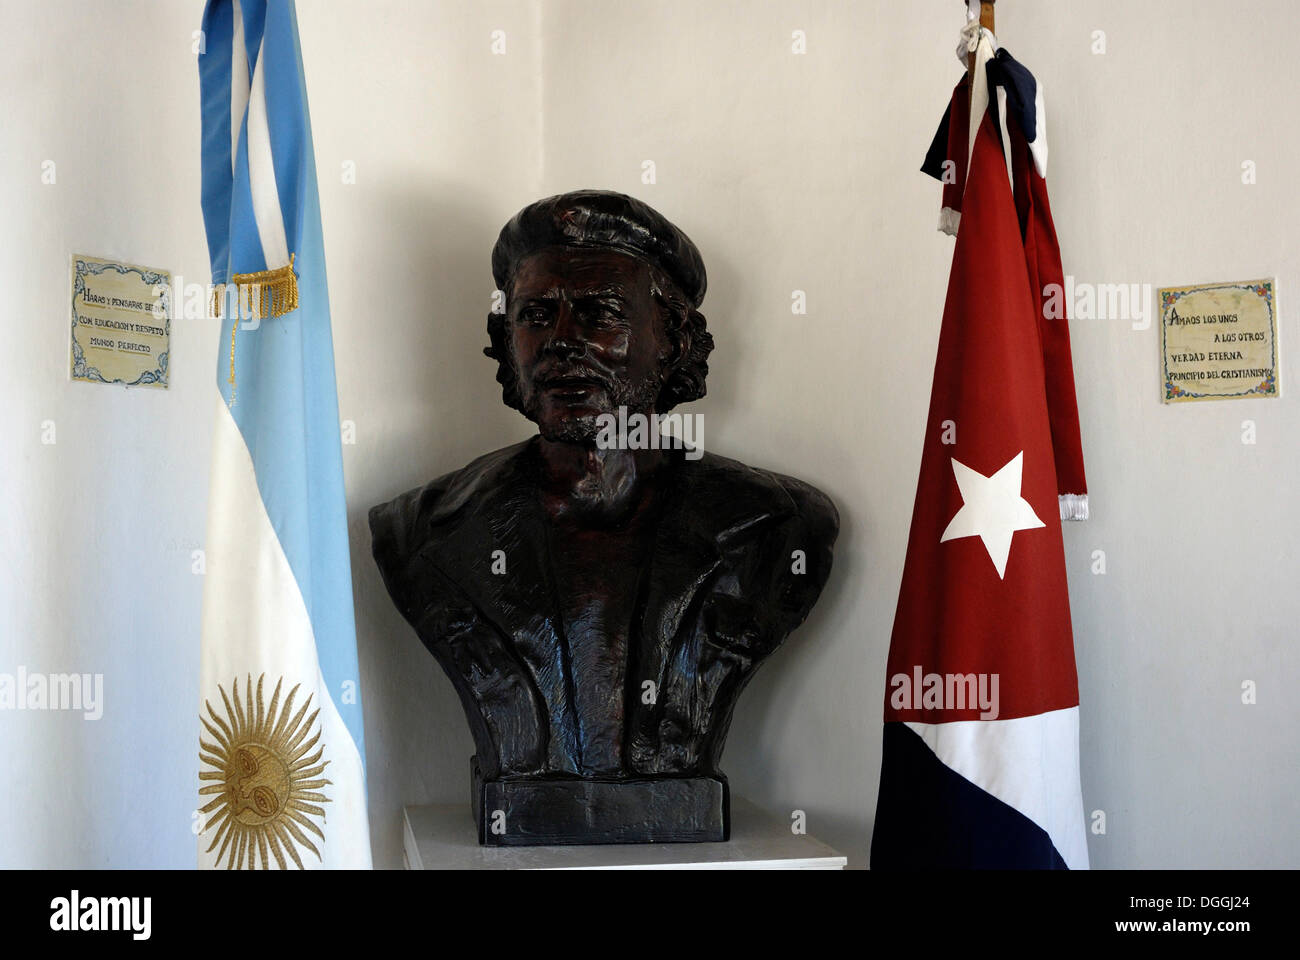 Bust of Che Guevara with Argentinian and Cuban flag, Che Guevara museum in the former home of the revolutionary and guerrilla - Stock Image